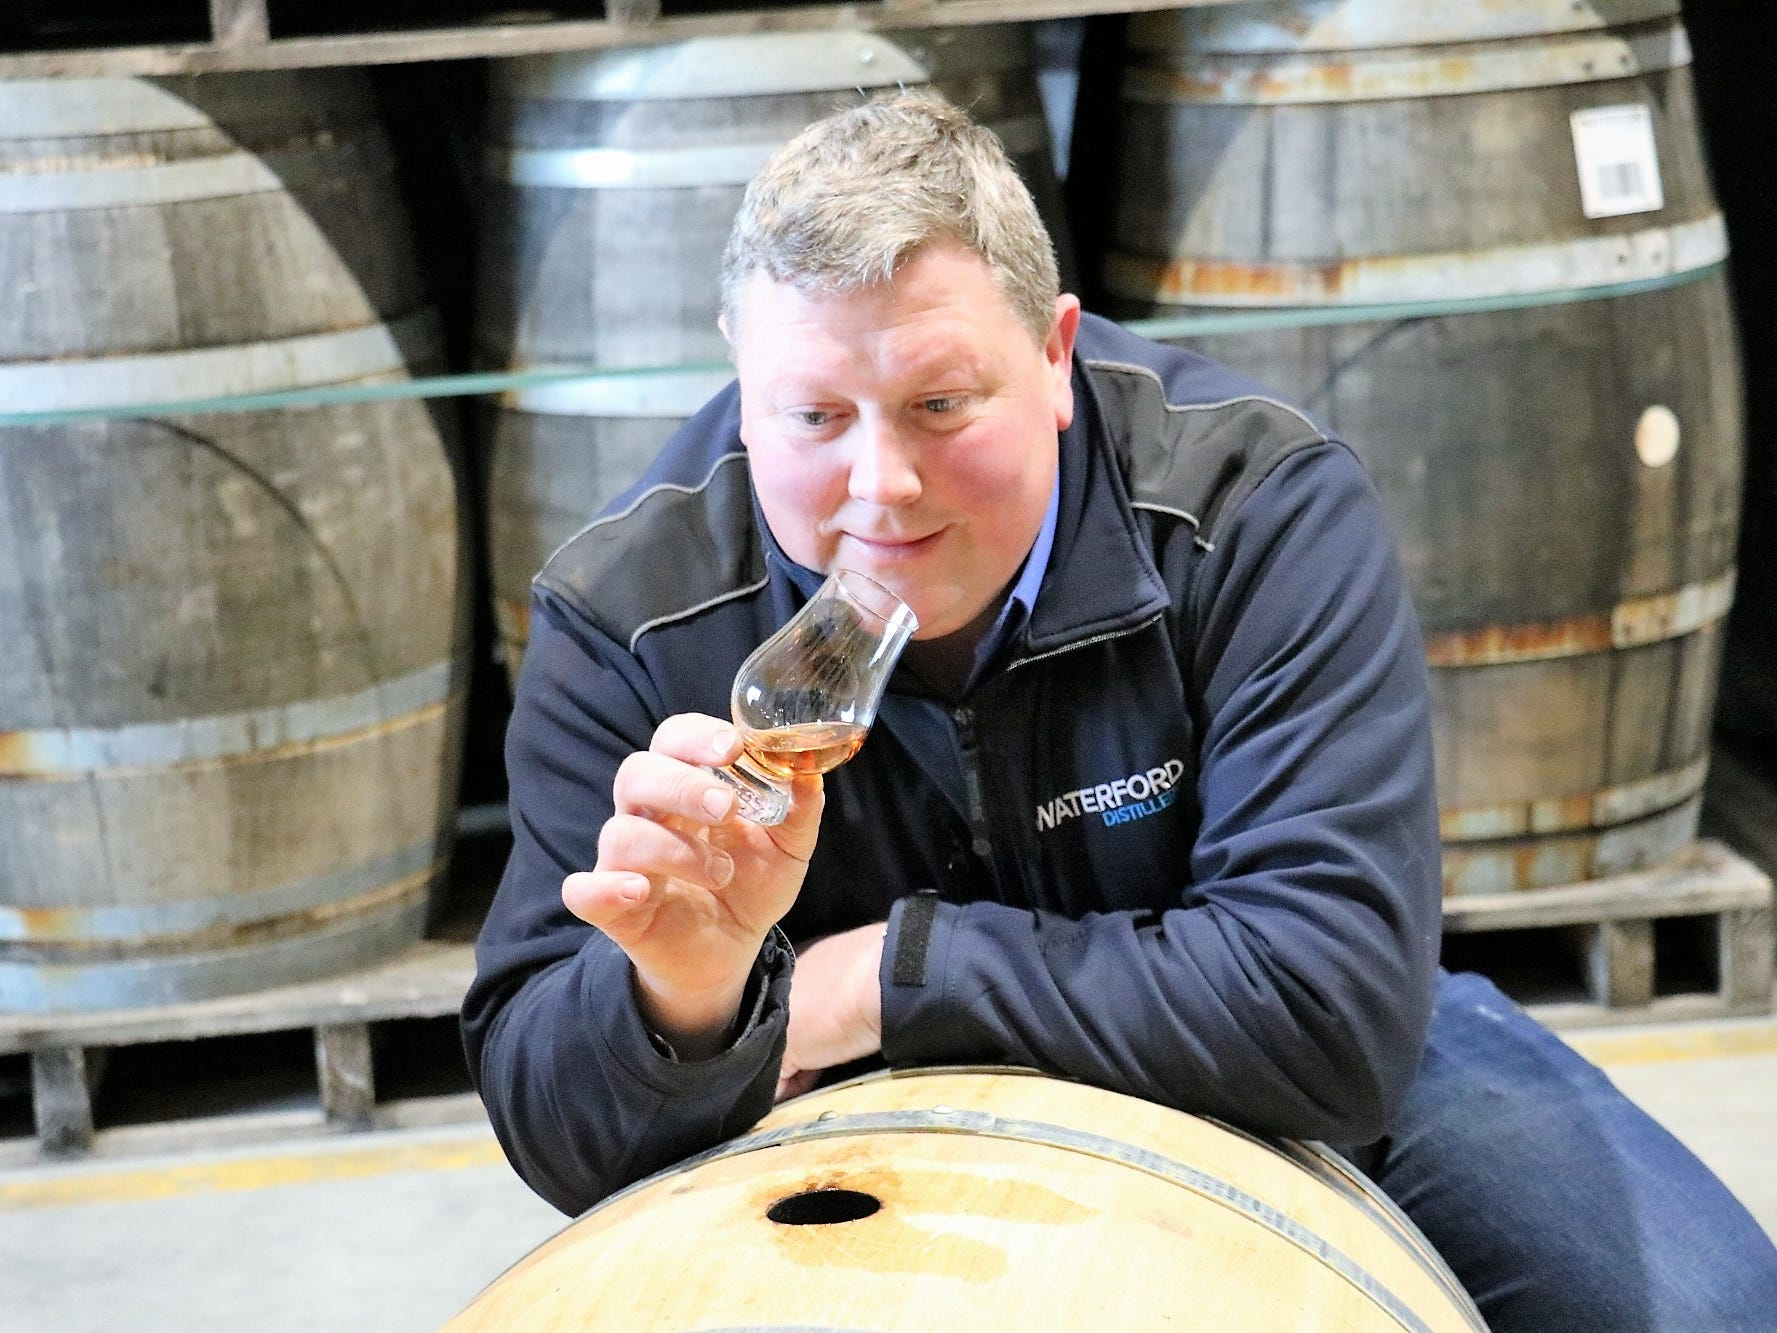 """We want everything to be as natural as possible,"" Gahan says. After a straight-from-the-cask taste, Gahan appears happy with the results."